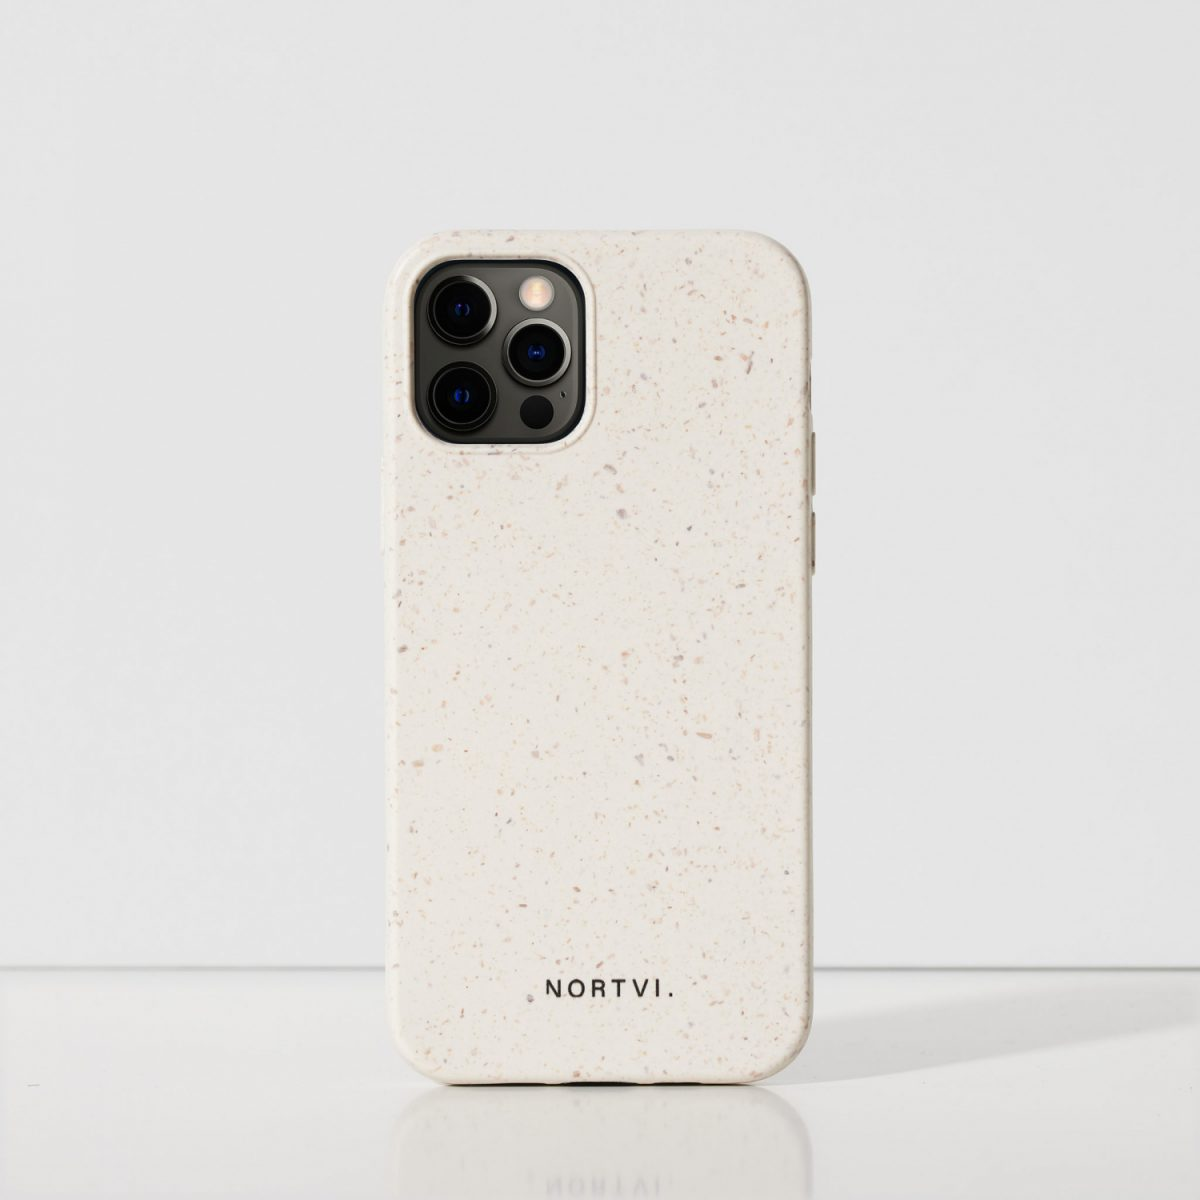 NORTVI white phone case for iPhone 12 Pro case